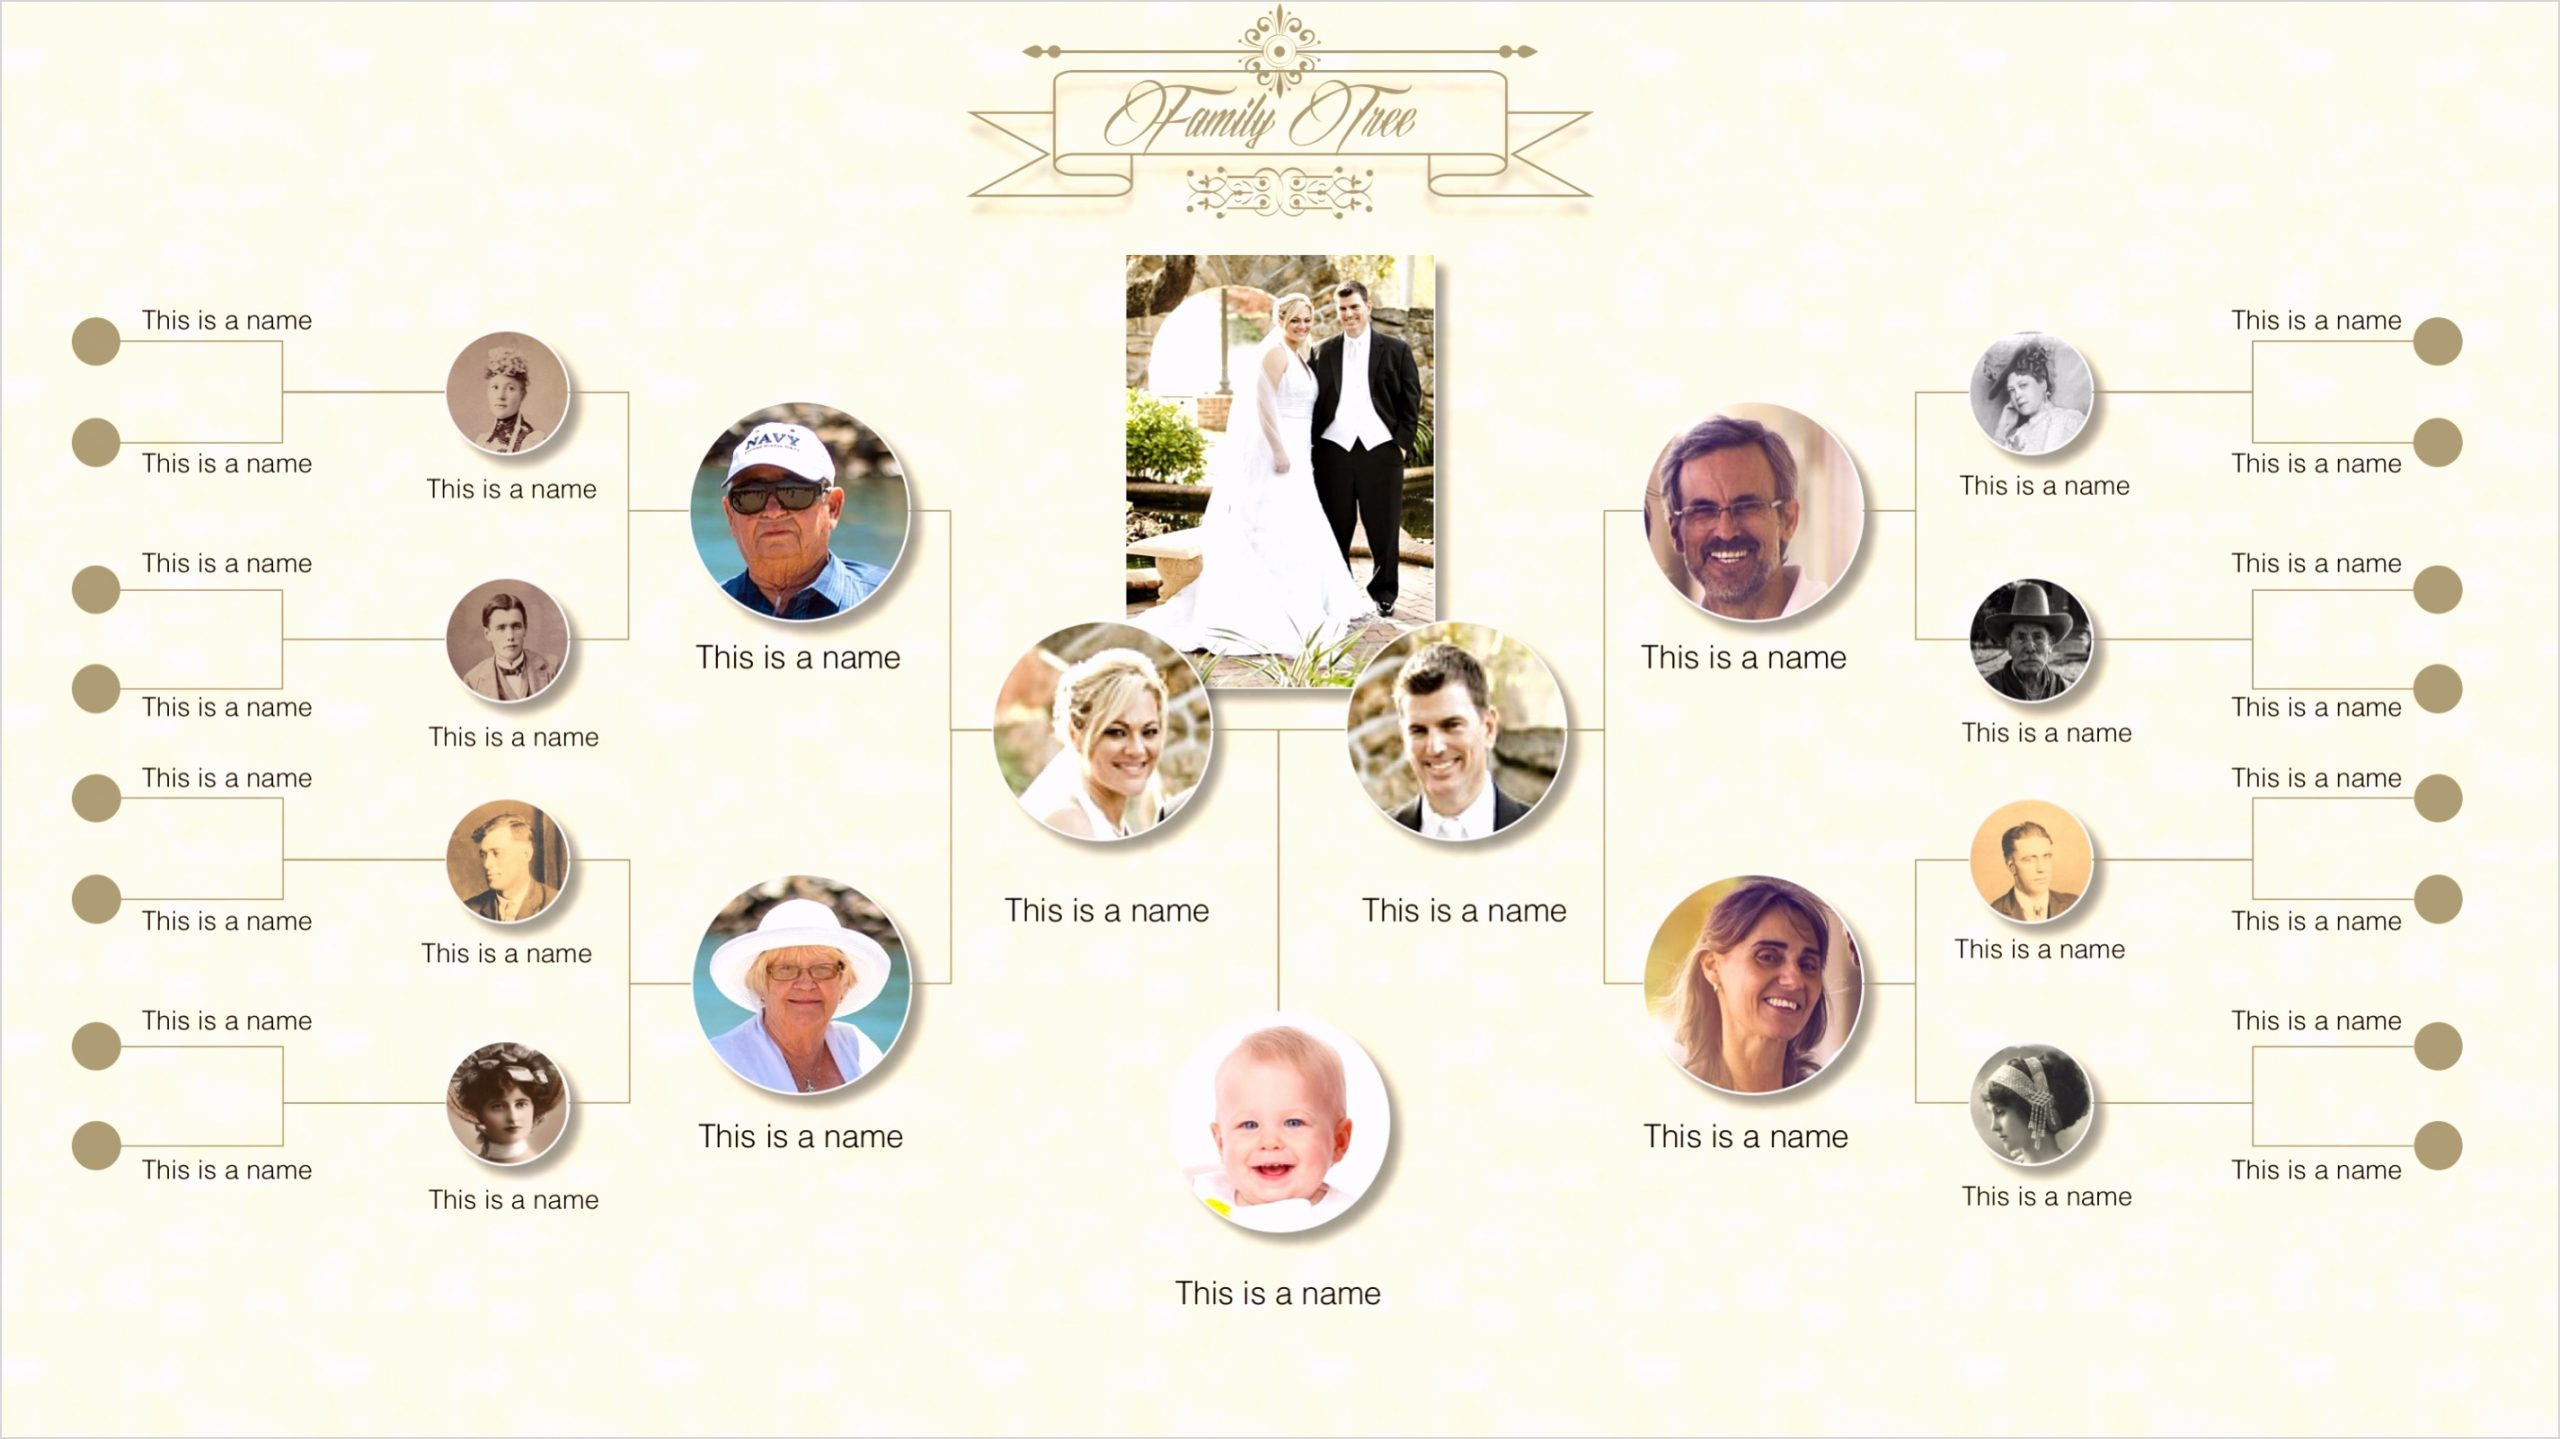 Family Tree Chart Template Word 98088 the8y Family Tree Powerpoint Templates Vwr@[o H G T E N B E B T D A S D F G H J K L O I U Y T R M N W C G T Y U X Z C C X Z A S Q W D D A J H H U I K J T U F I E F D W H I O C P L O K I U J M N H Y T R F V C D E W S X Z A Q S Z X C V B N M N B V C C X Z A Q W E E D C V T